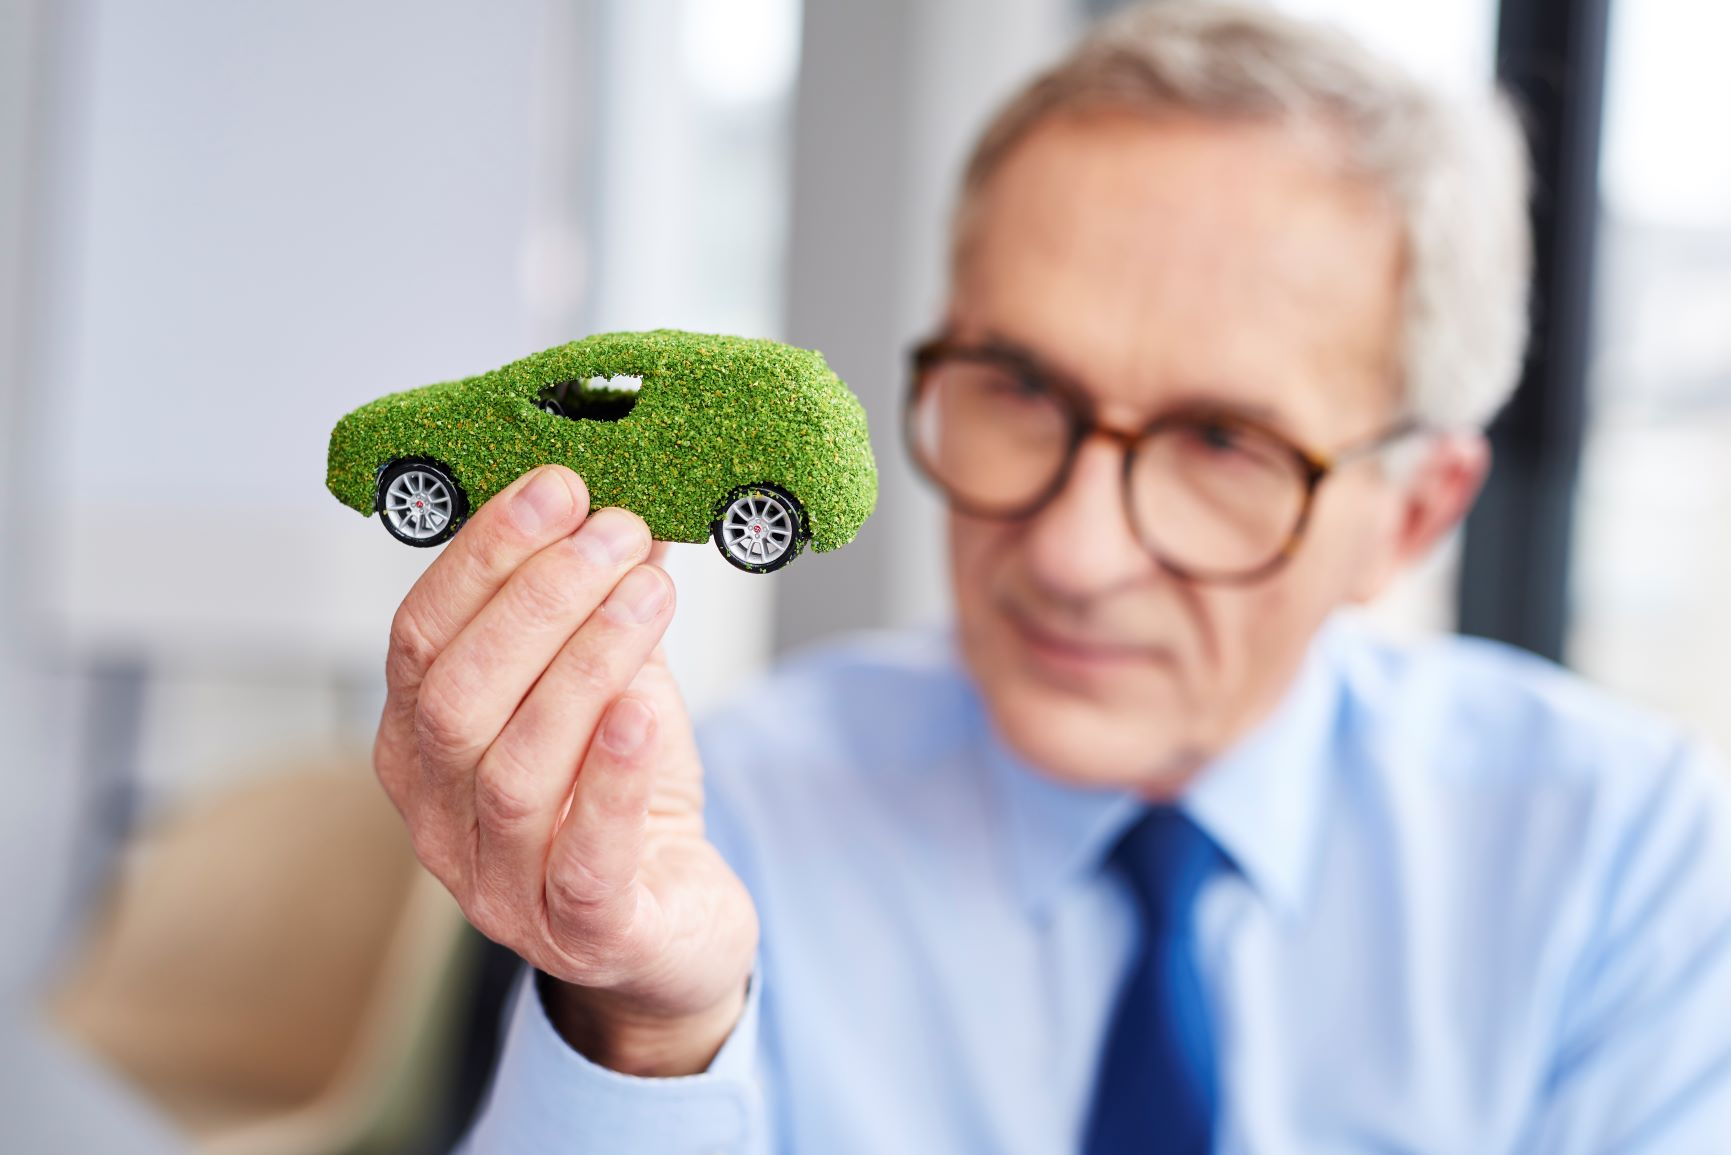 man holding up green eco friendly car